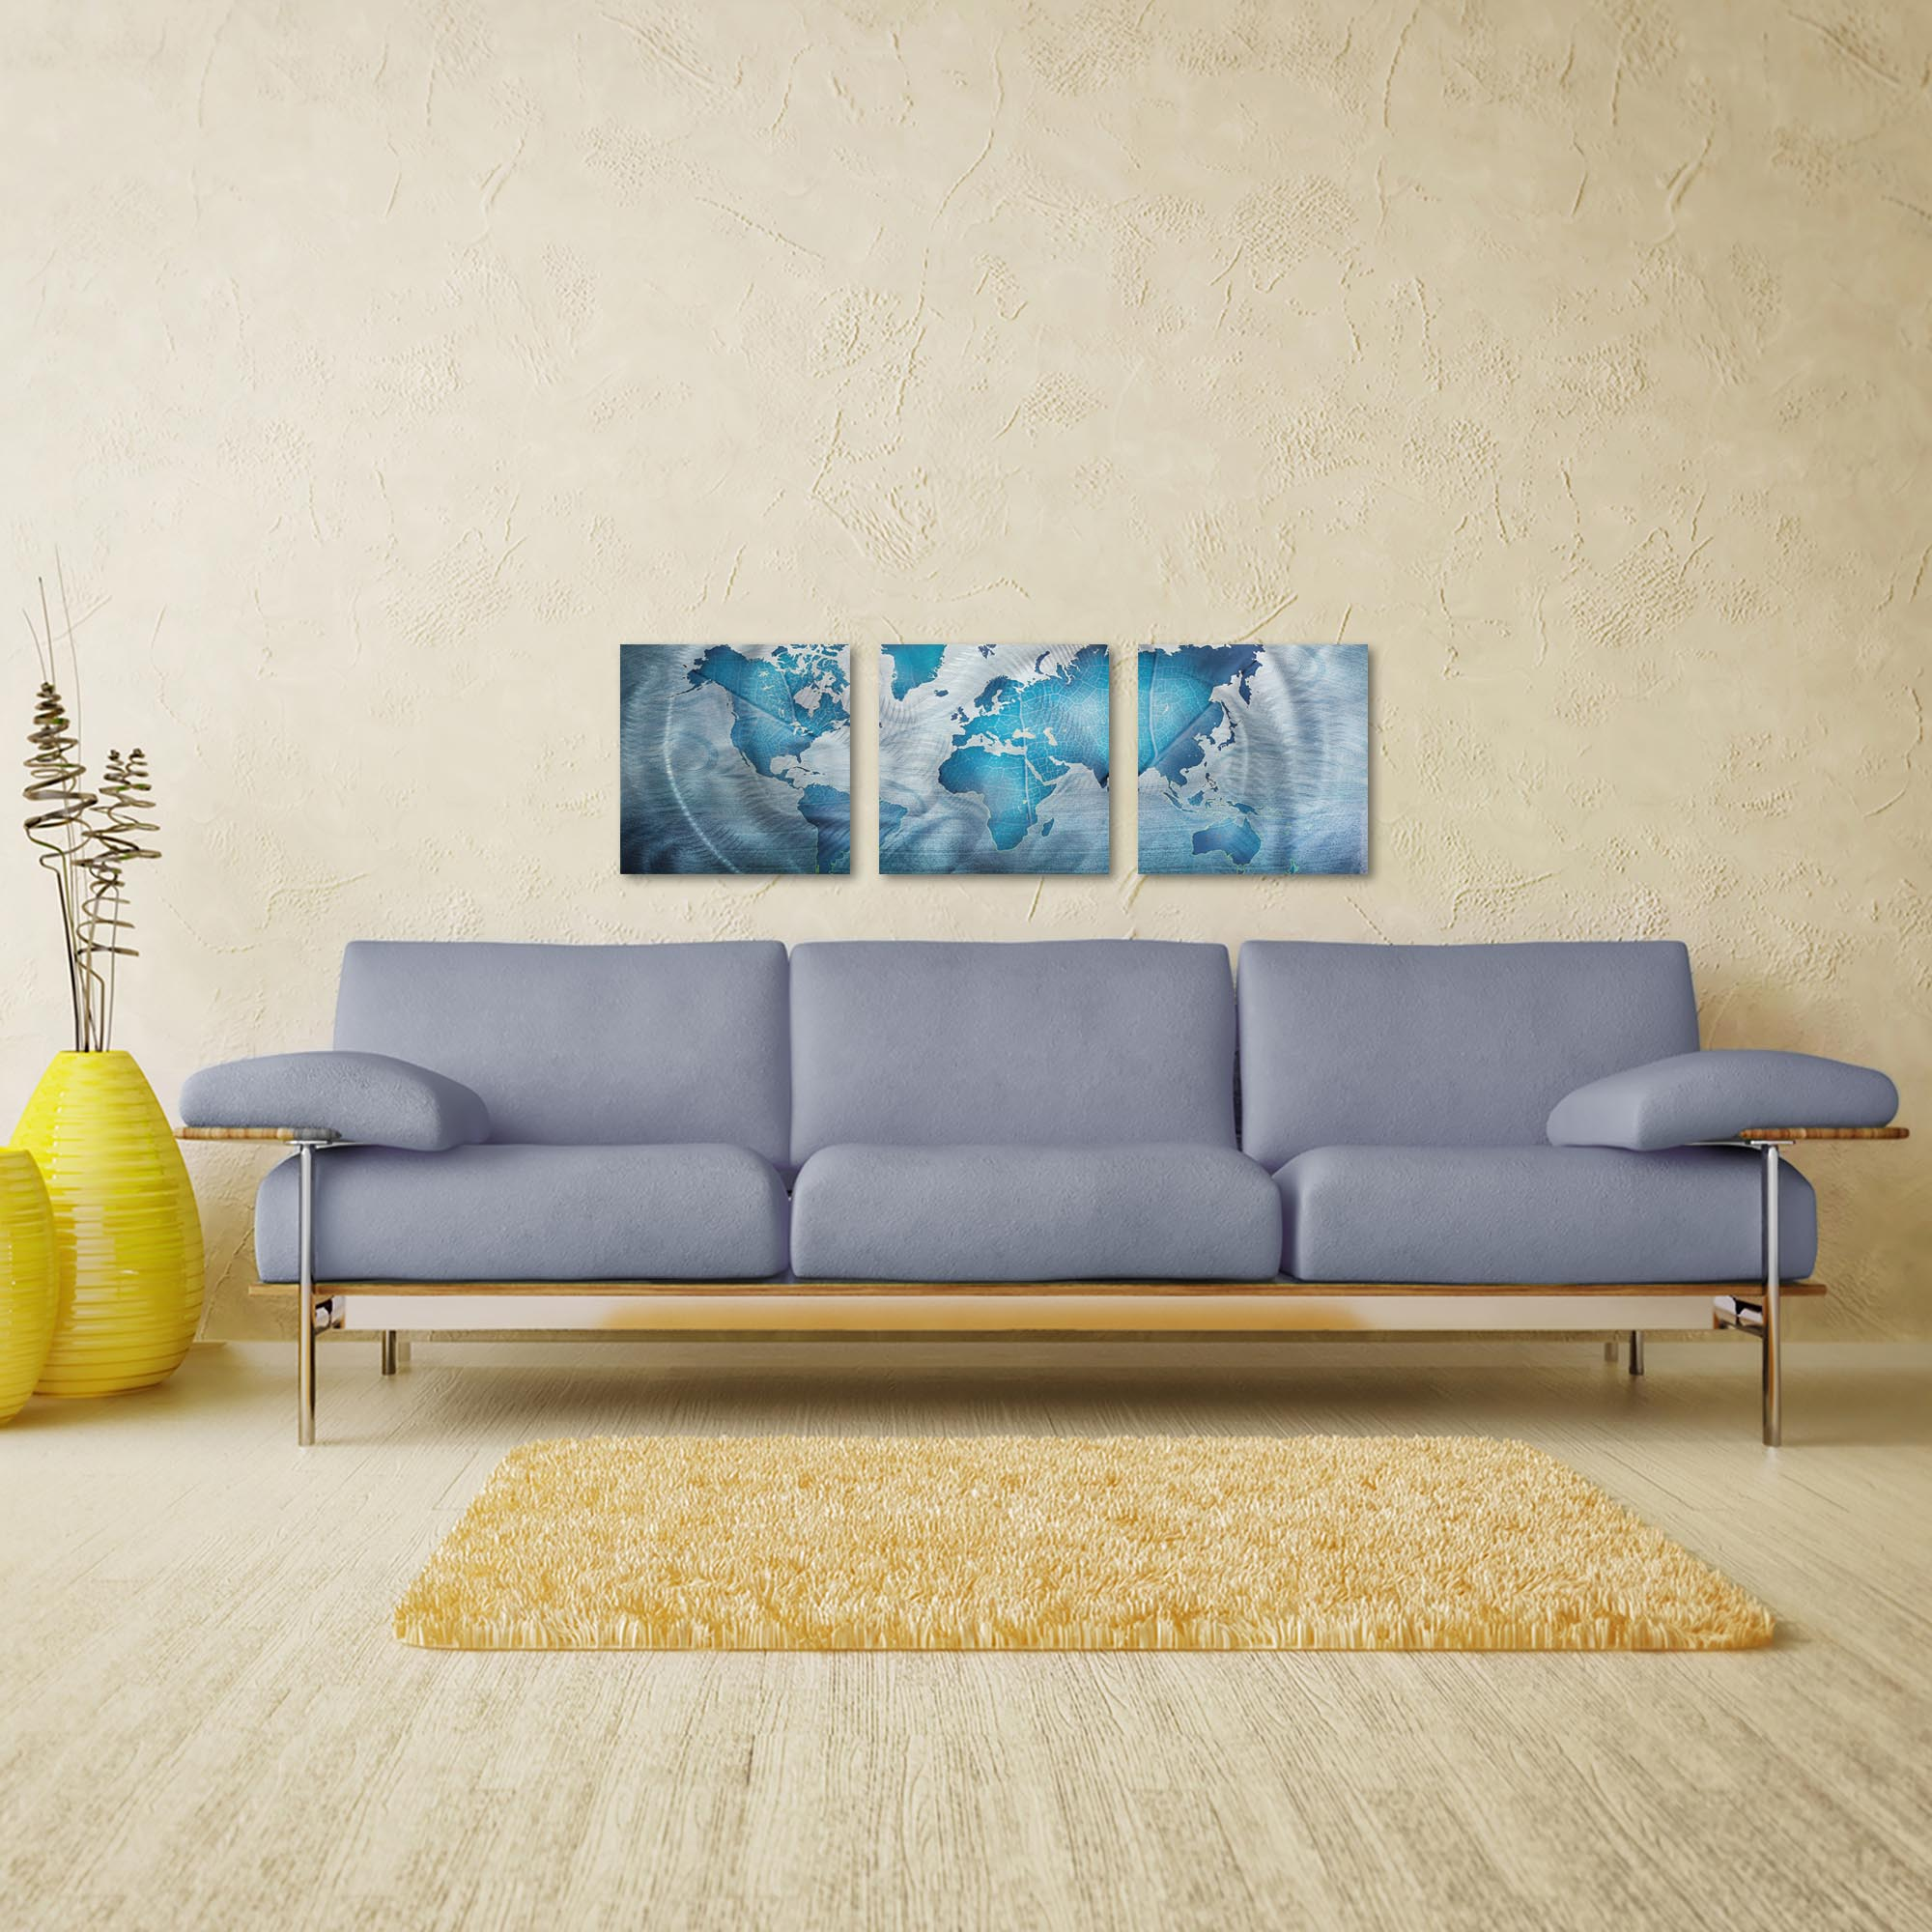 Land and Sea Triptych 38x12in. Metal or Acrylic Contemporary Decor - Lifestyle View